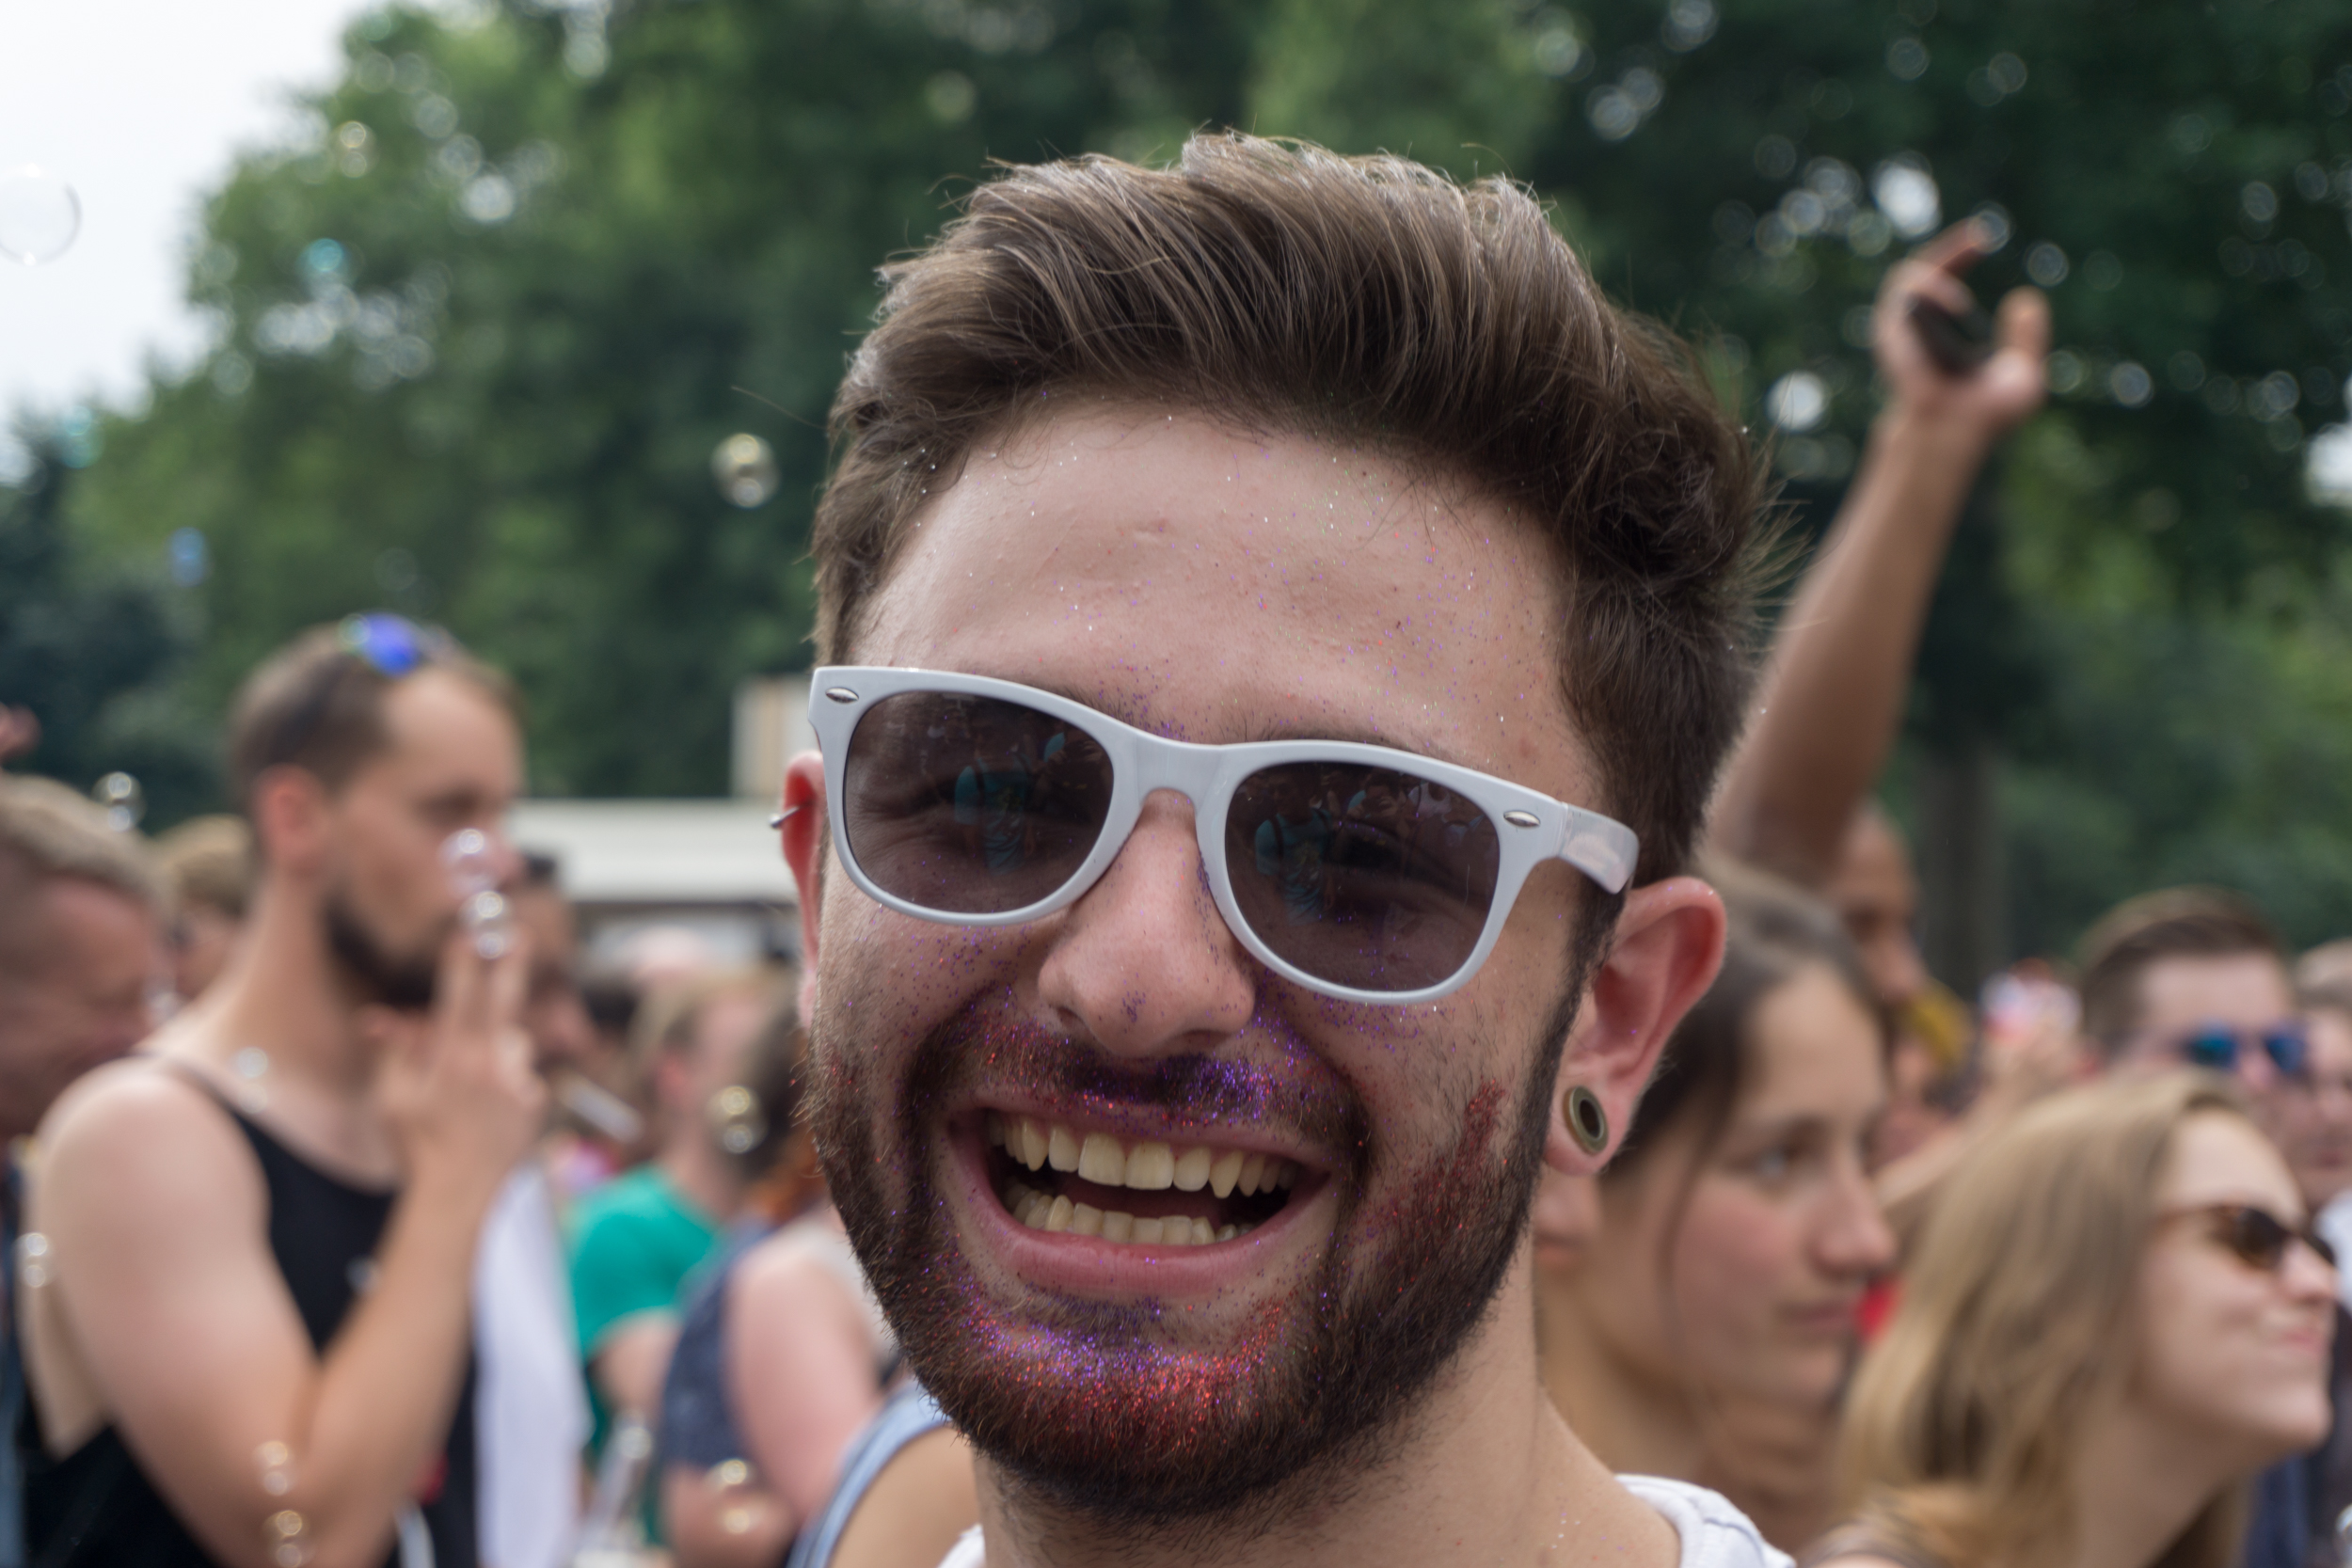 In_Pictures-Berlin_Pride-15